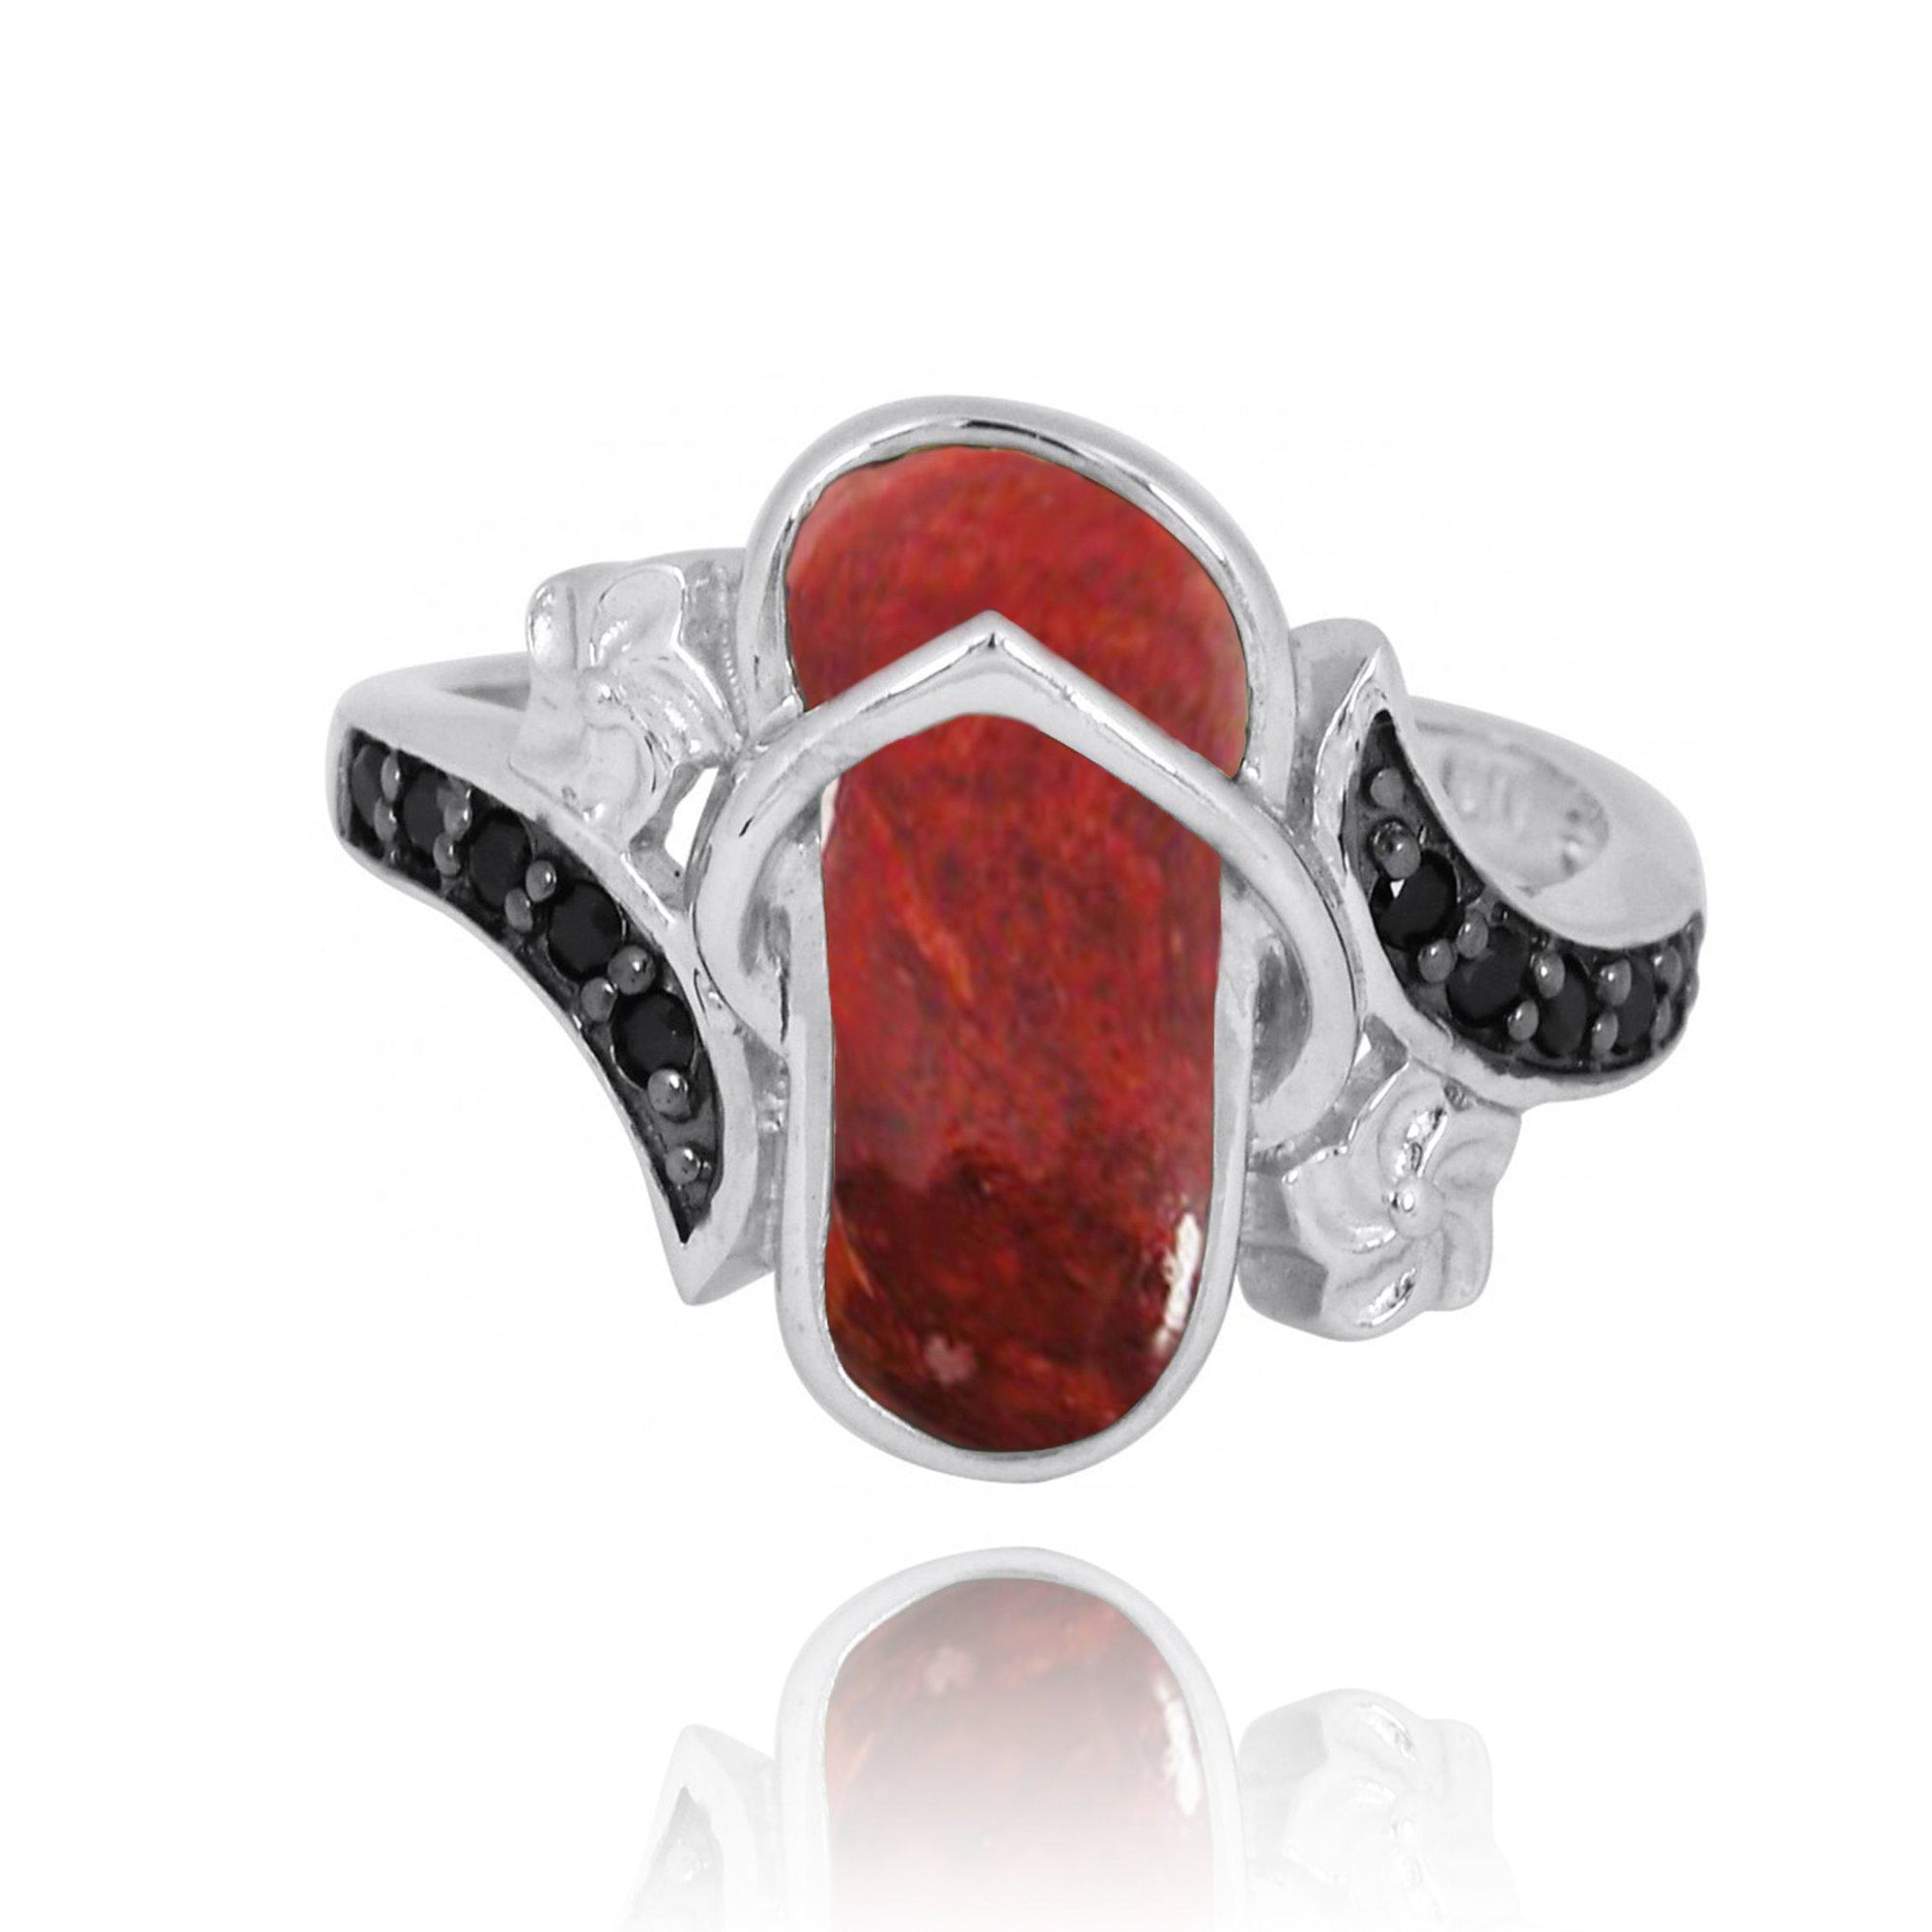 Ring-Flip Flop Ring with Red Coral and Black Spinel-Coastal Passion